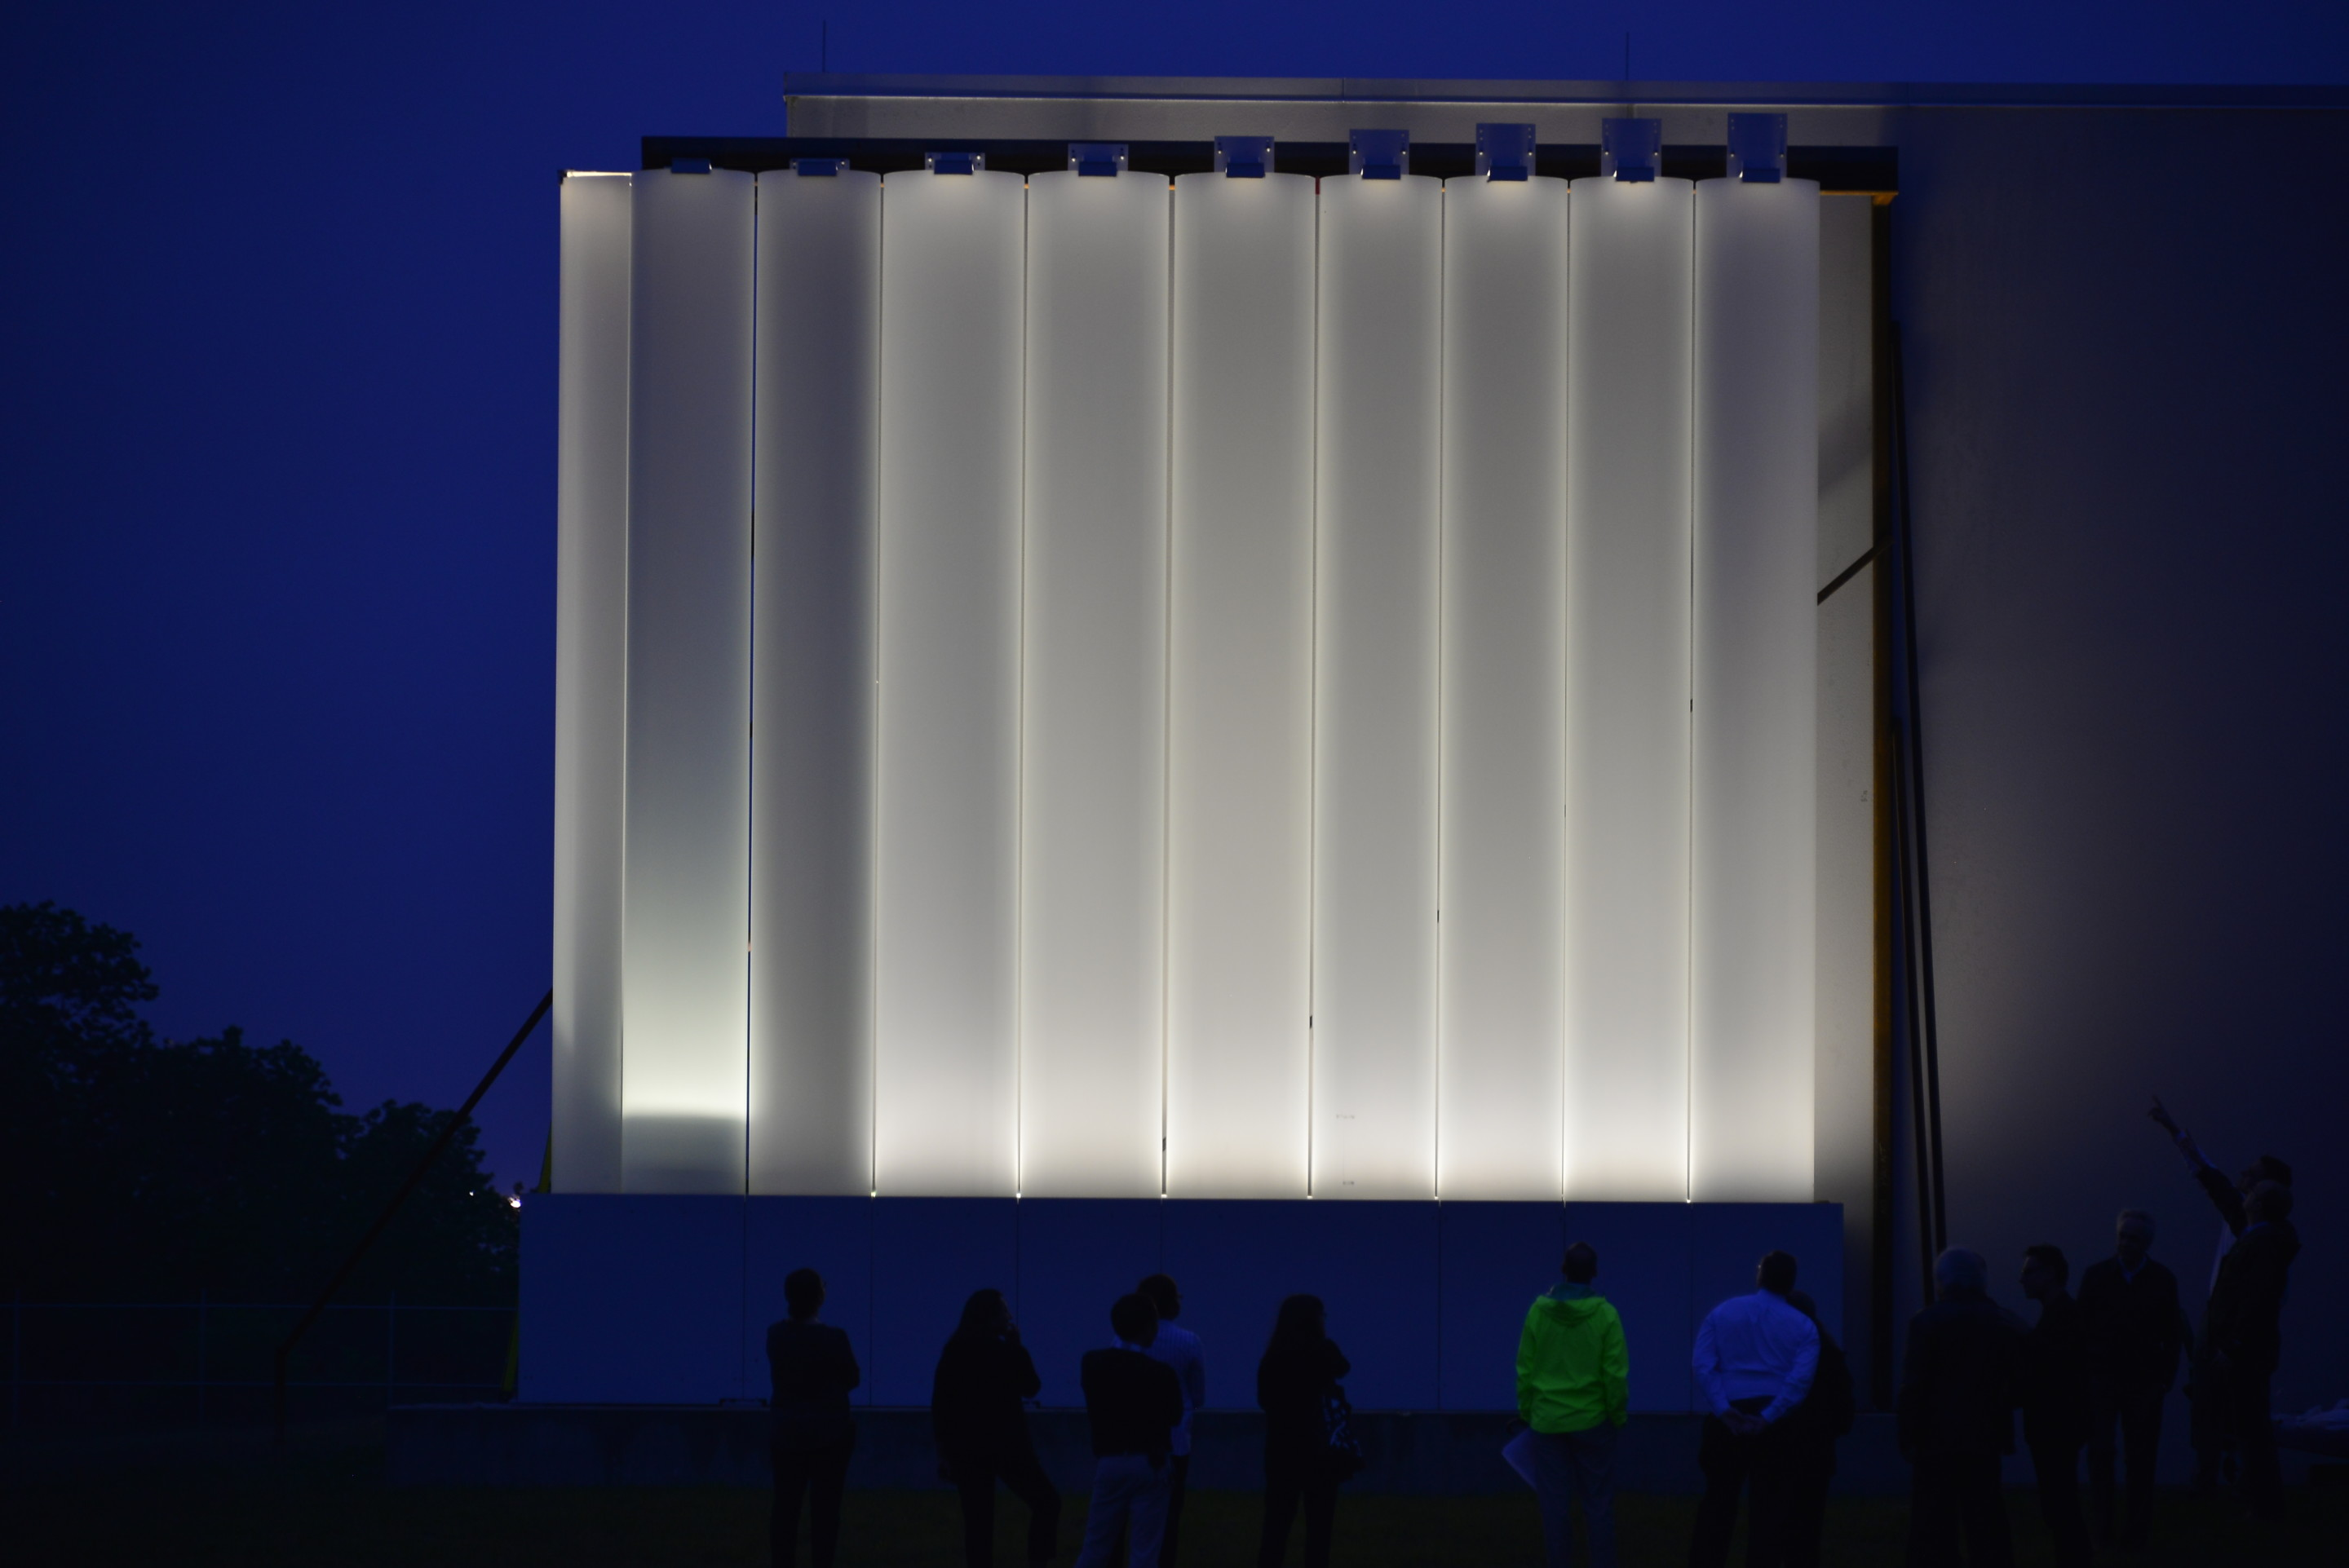 Image of facade mock up at night with lamp-like glow across the kinder building